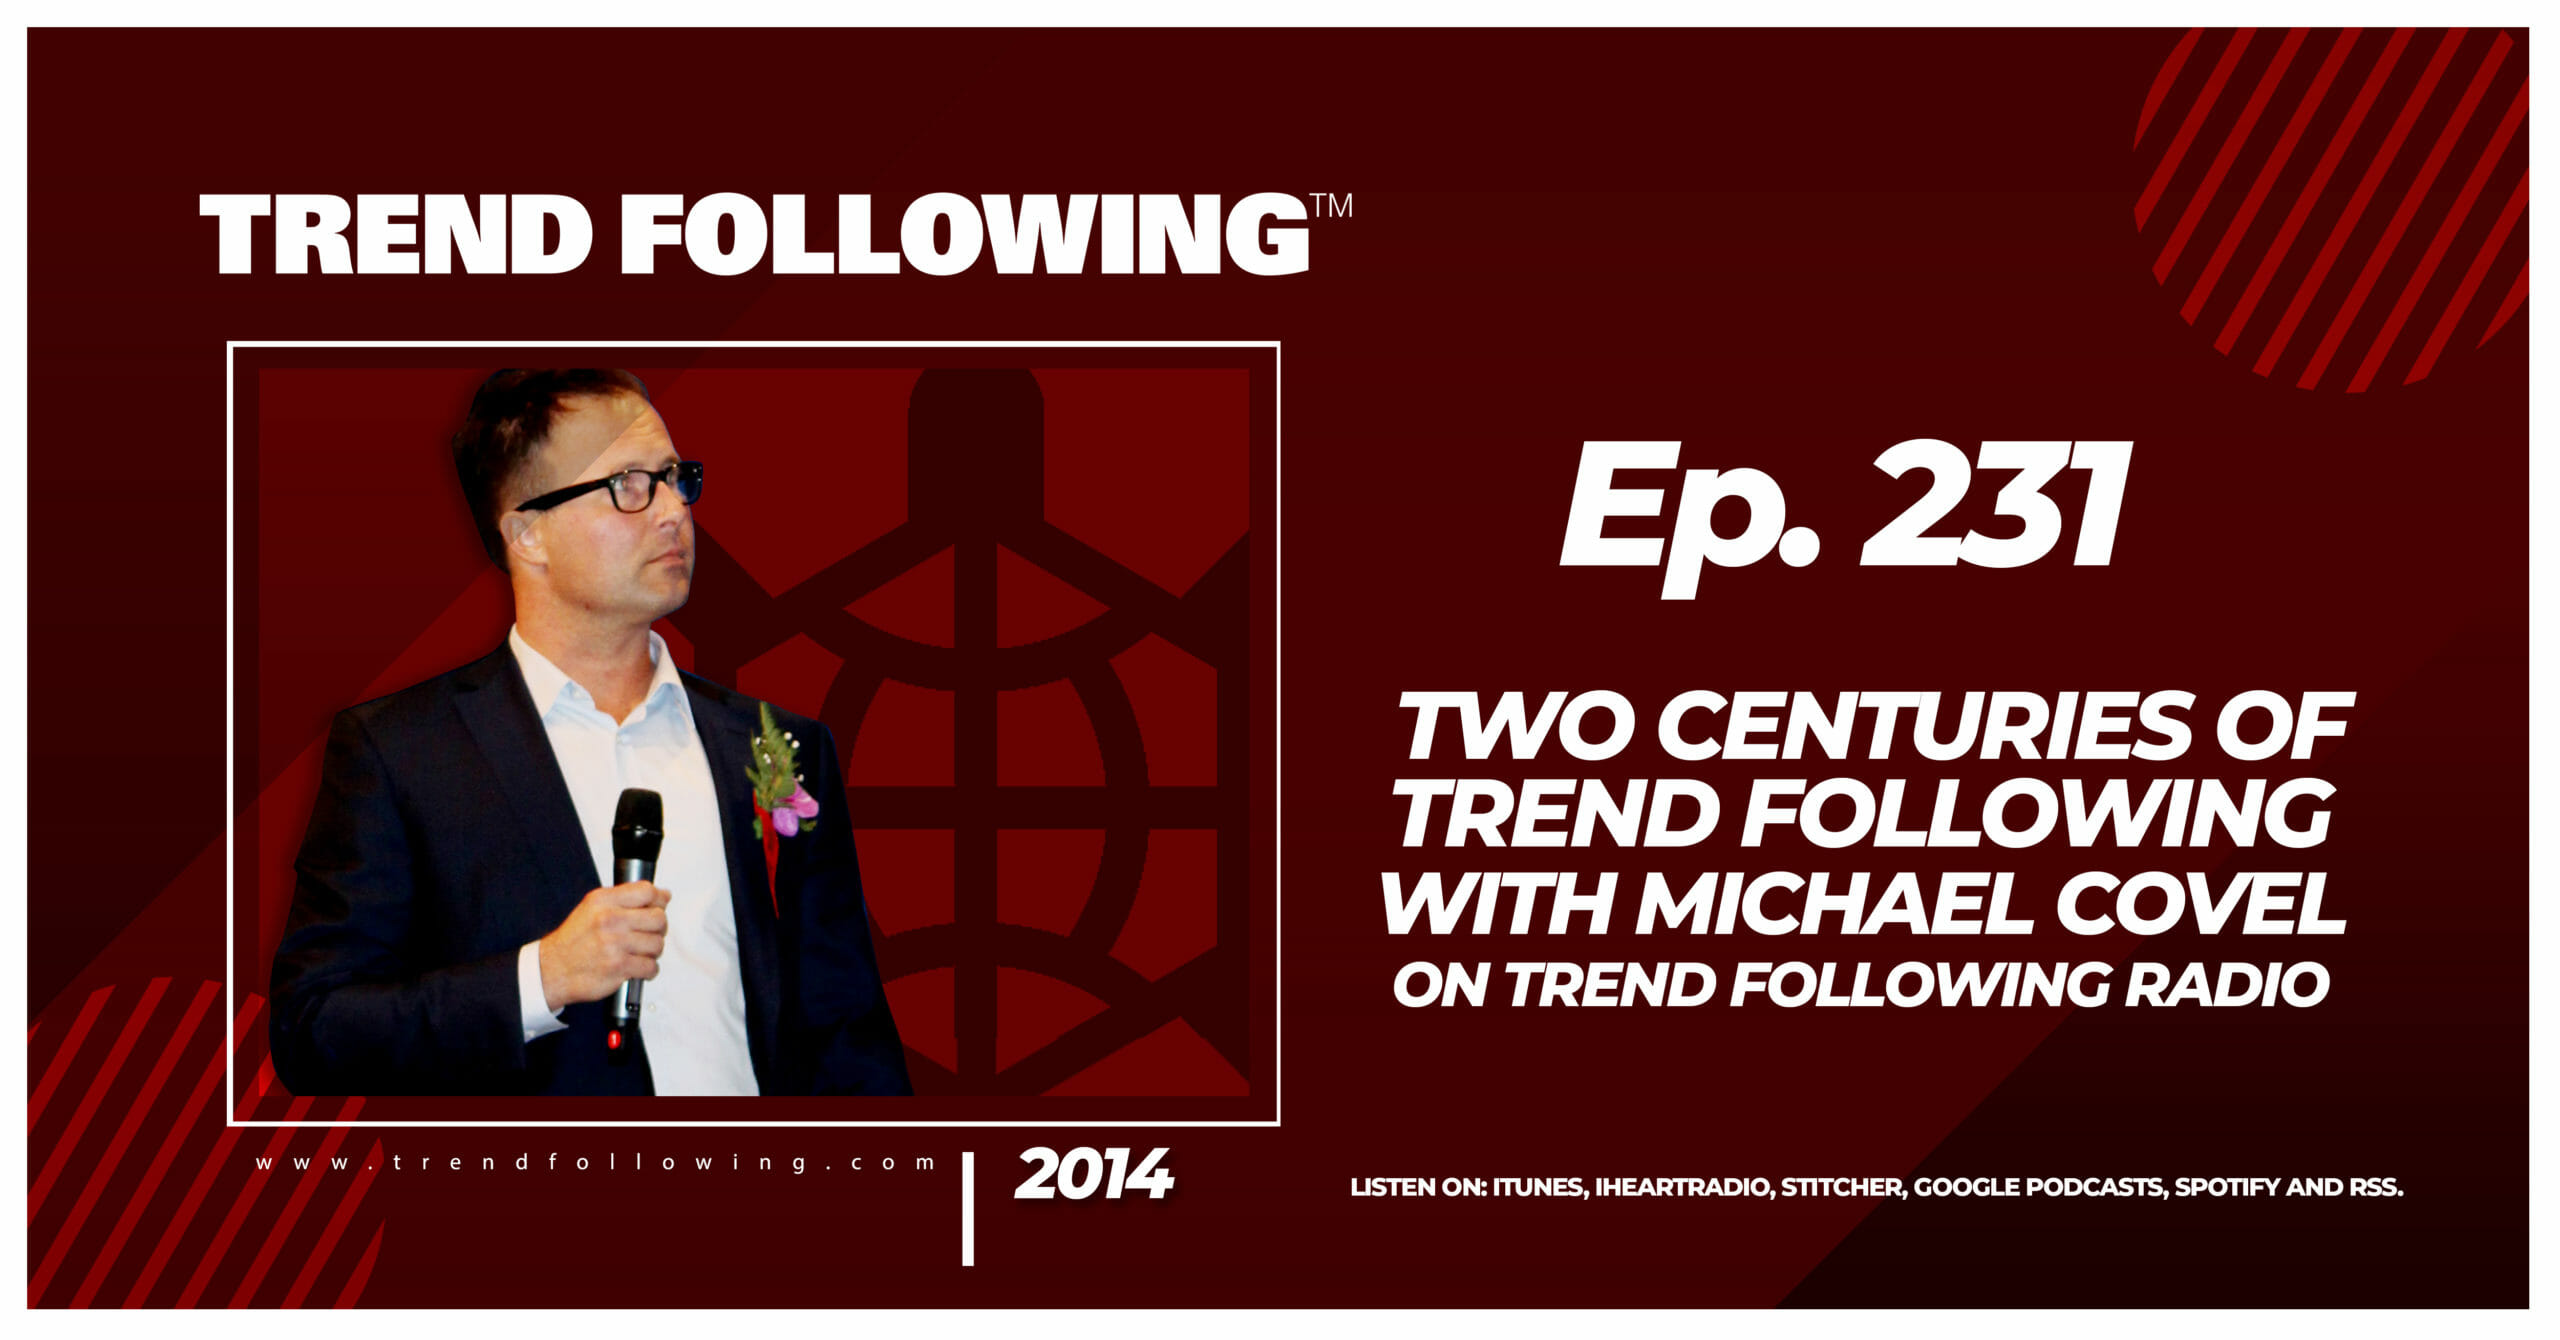 Two Centuries of Trend Following with Michael Covel on Trend Following Radio